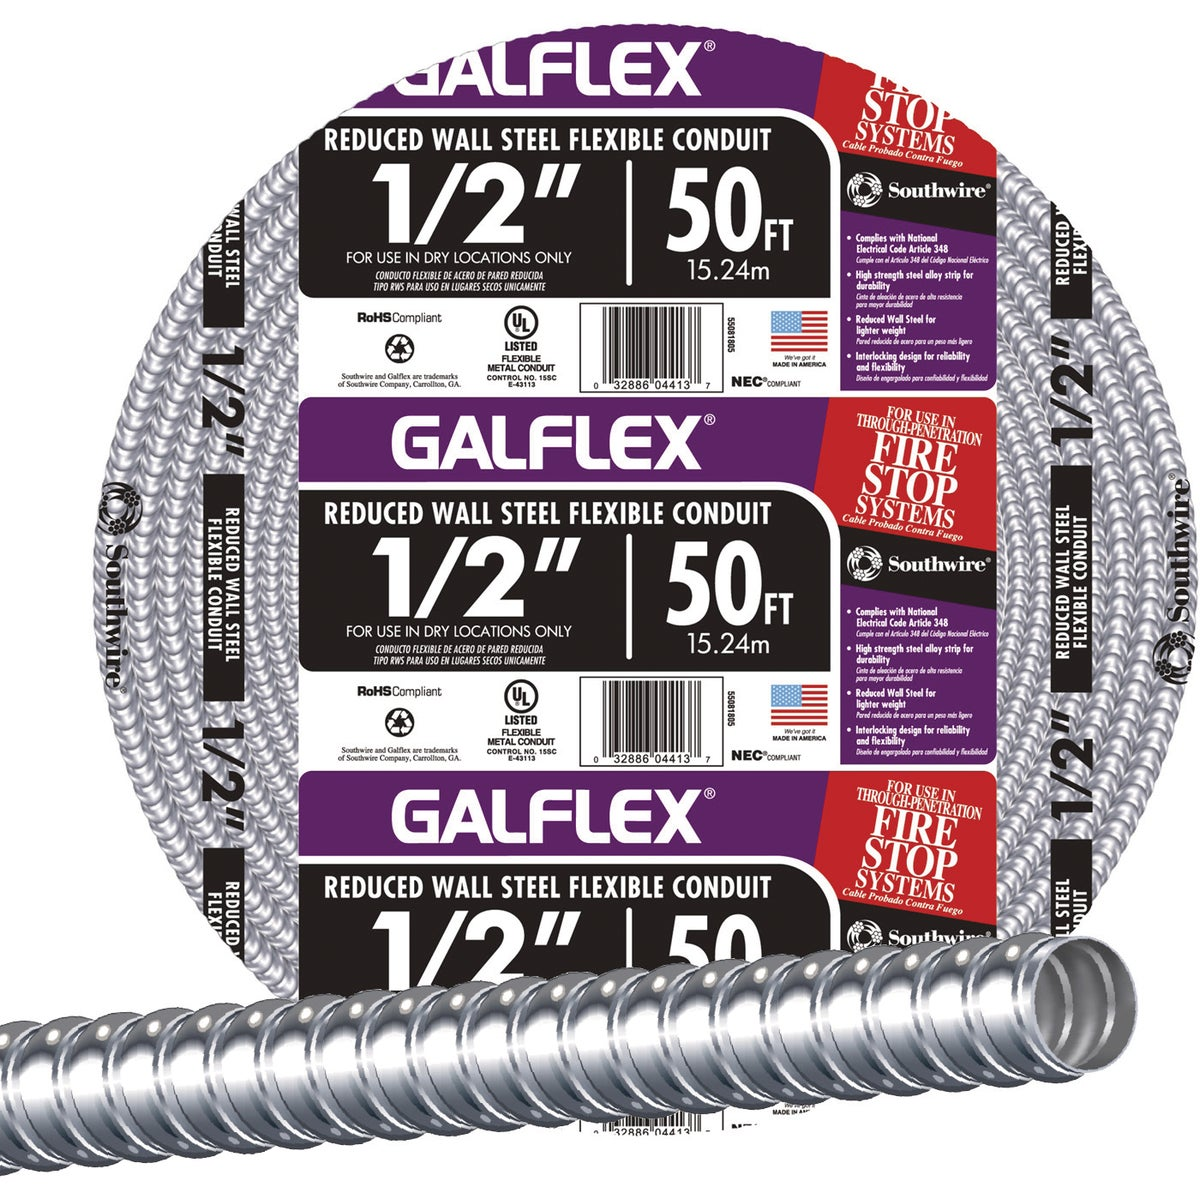 "50' 1/2"" FLEX CONDUIT - 55081805 by Southwire Company"